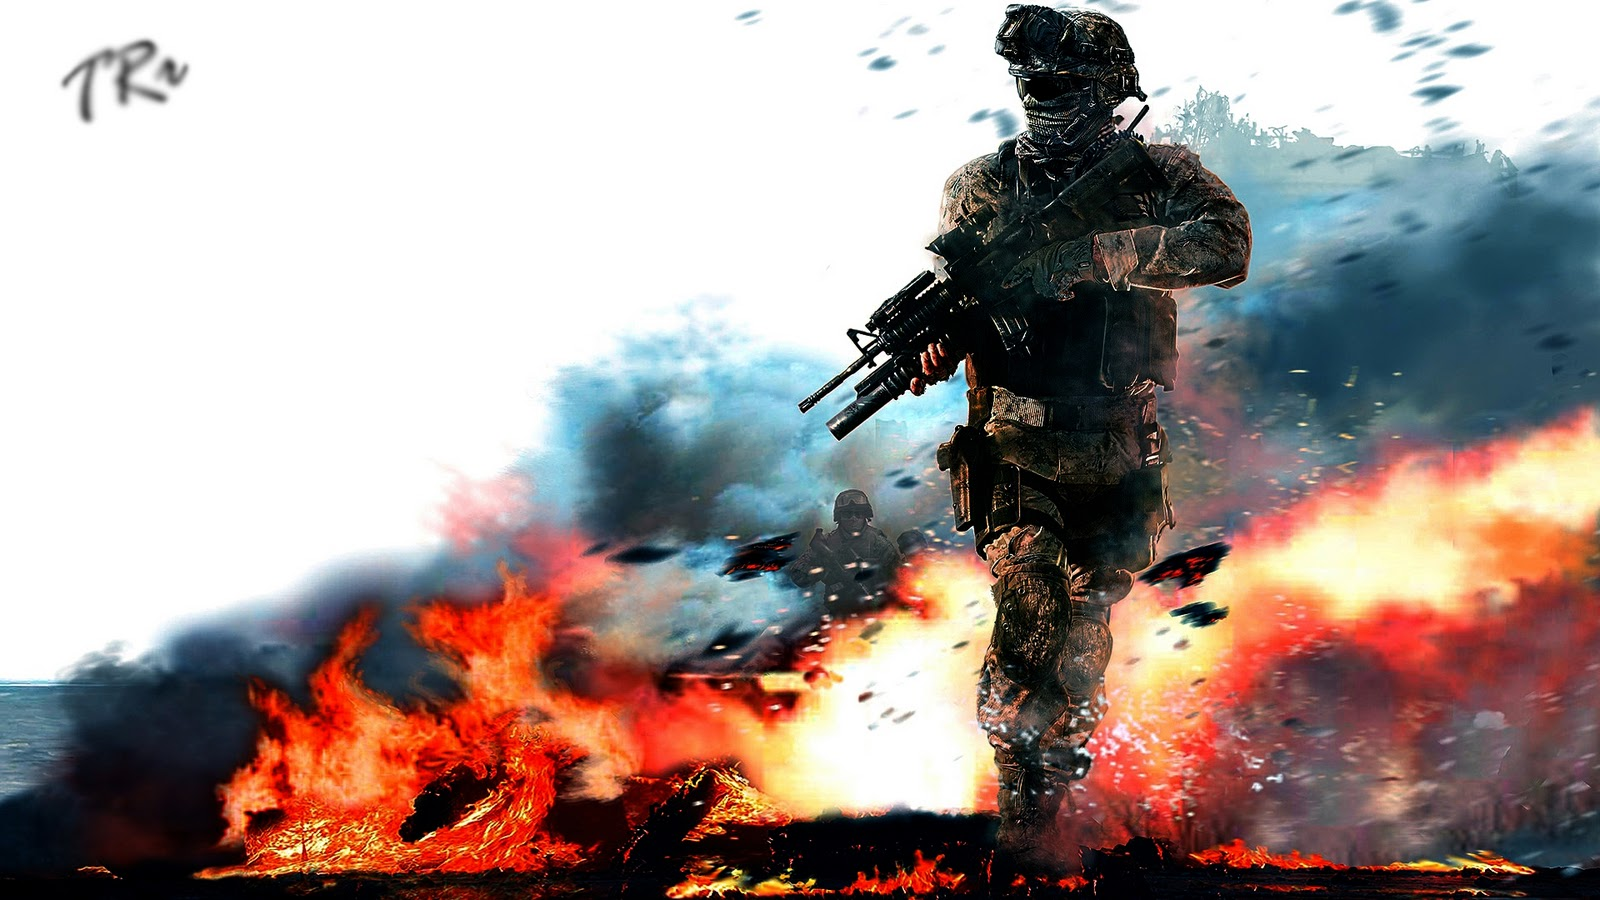 Call of Duty Black Ops │HD Wallpapers 1900x1200 | Desktop Wallpapers